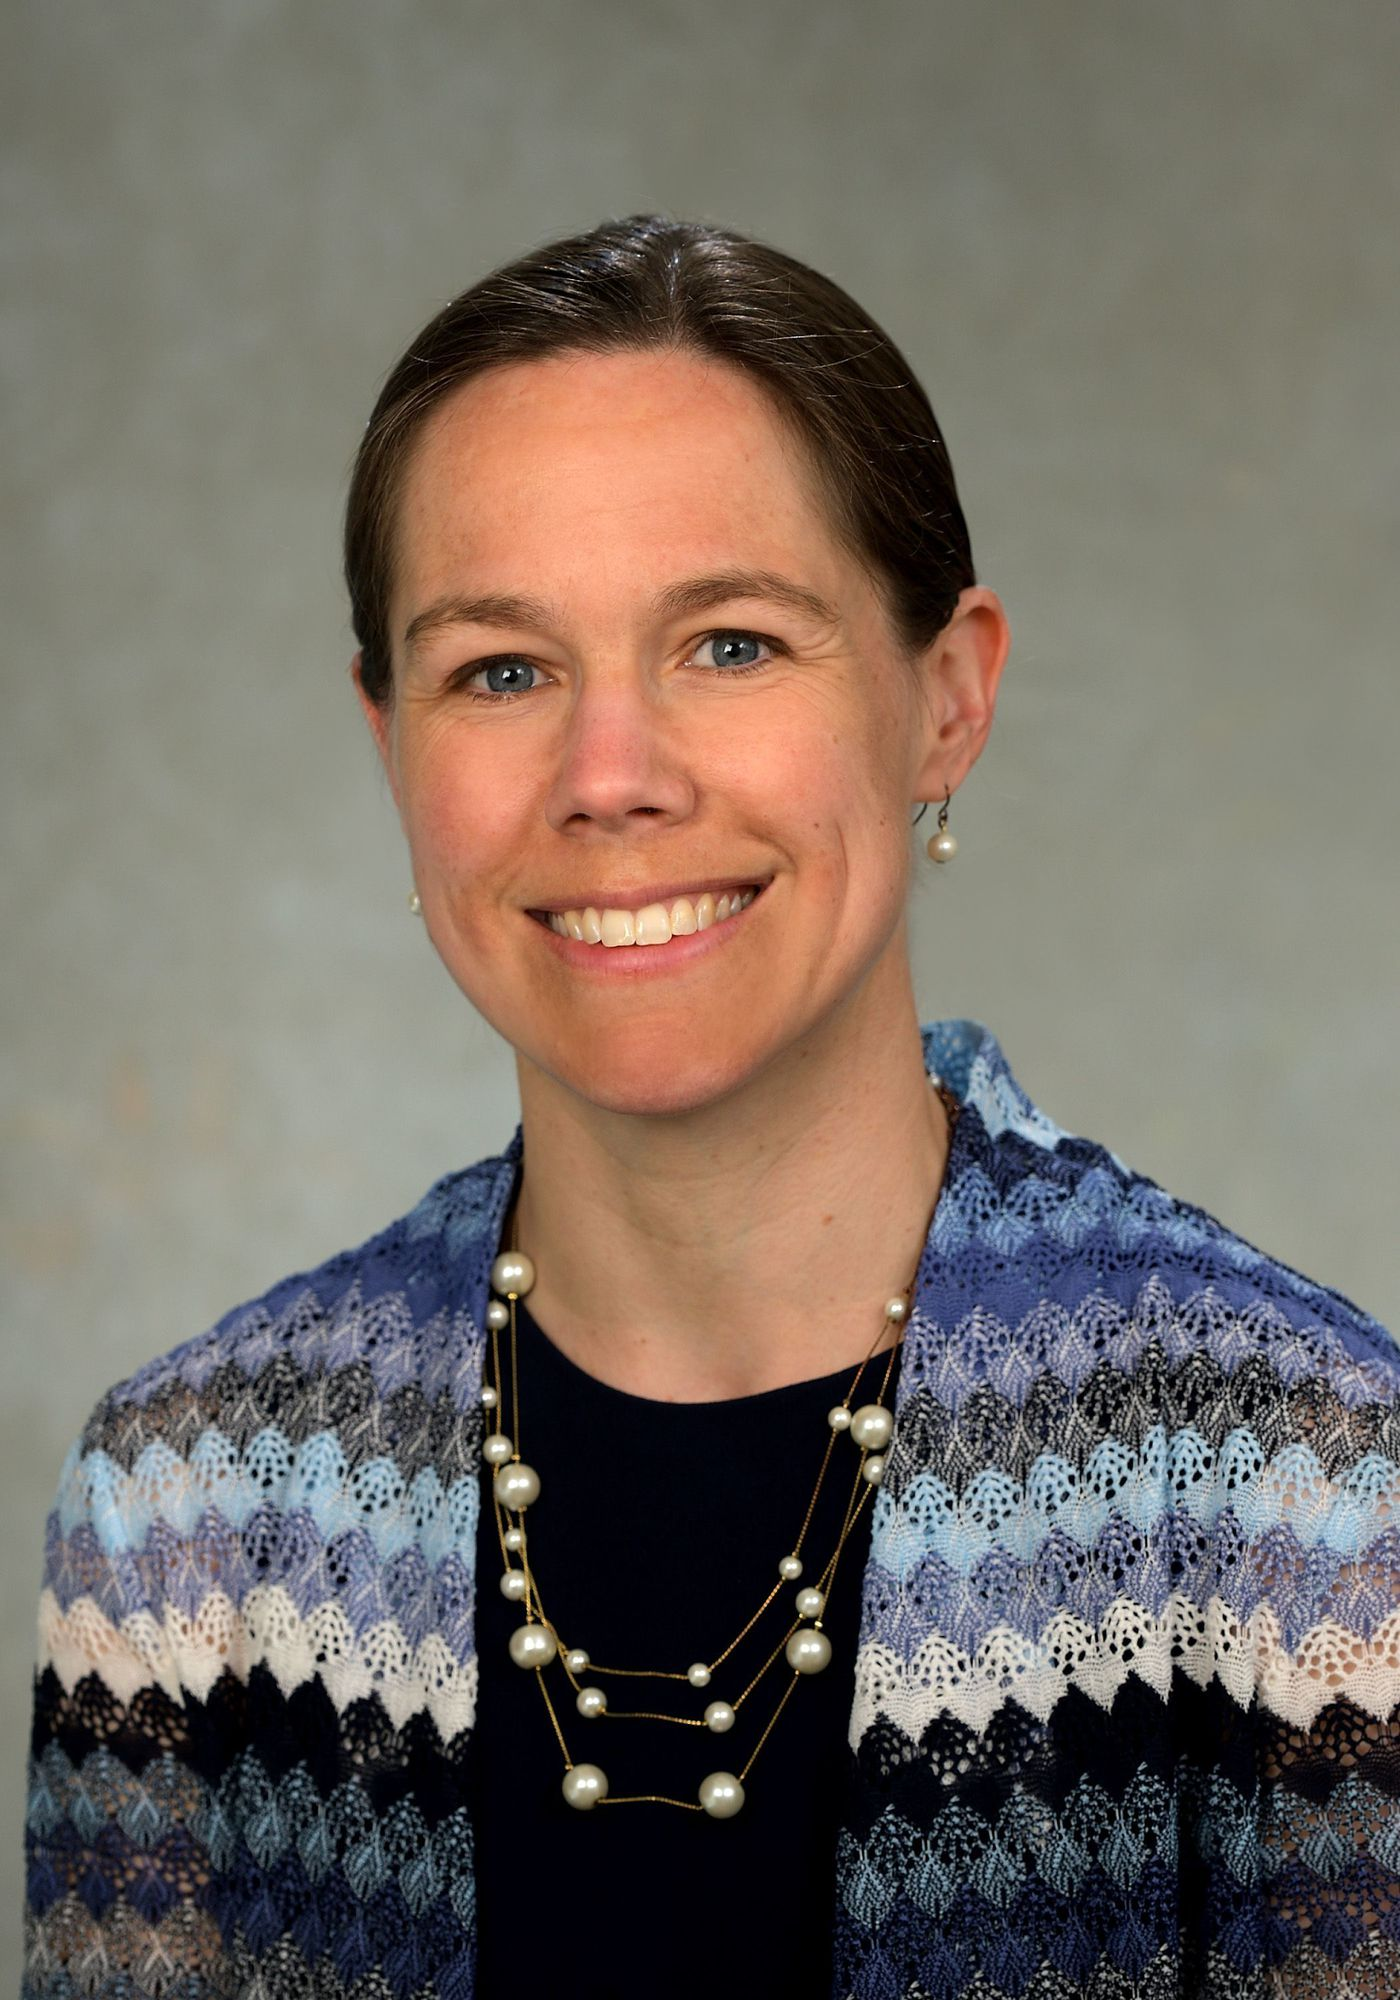 Nina O'Connor is chief of the palliative care program at the University of Pennsylvania Health System.